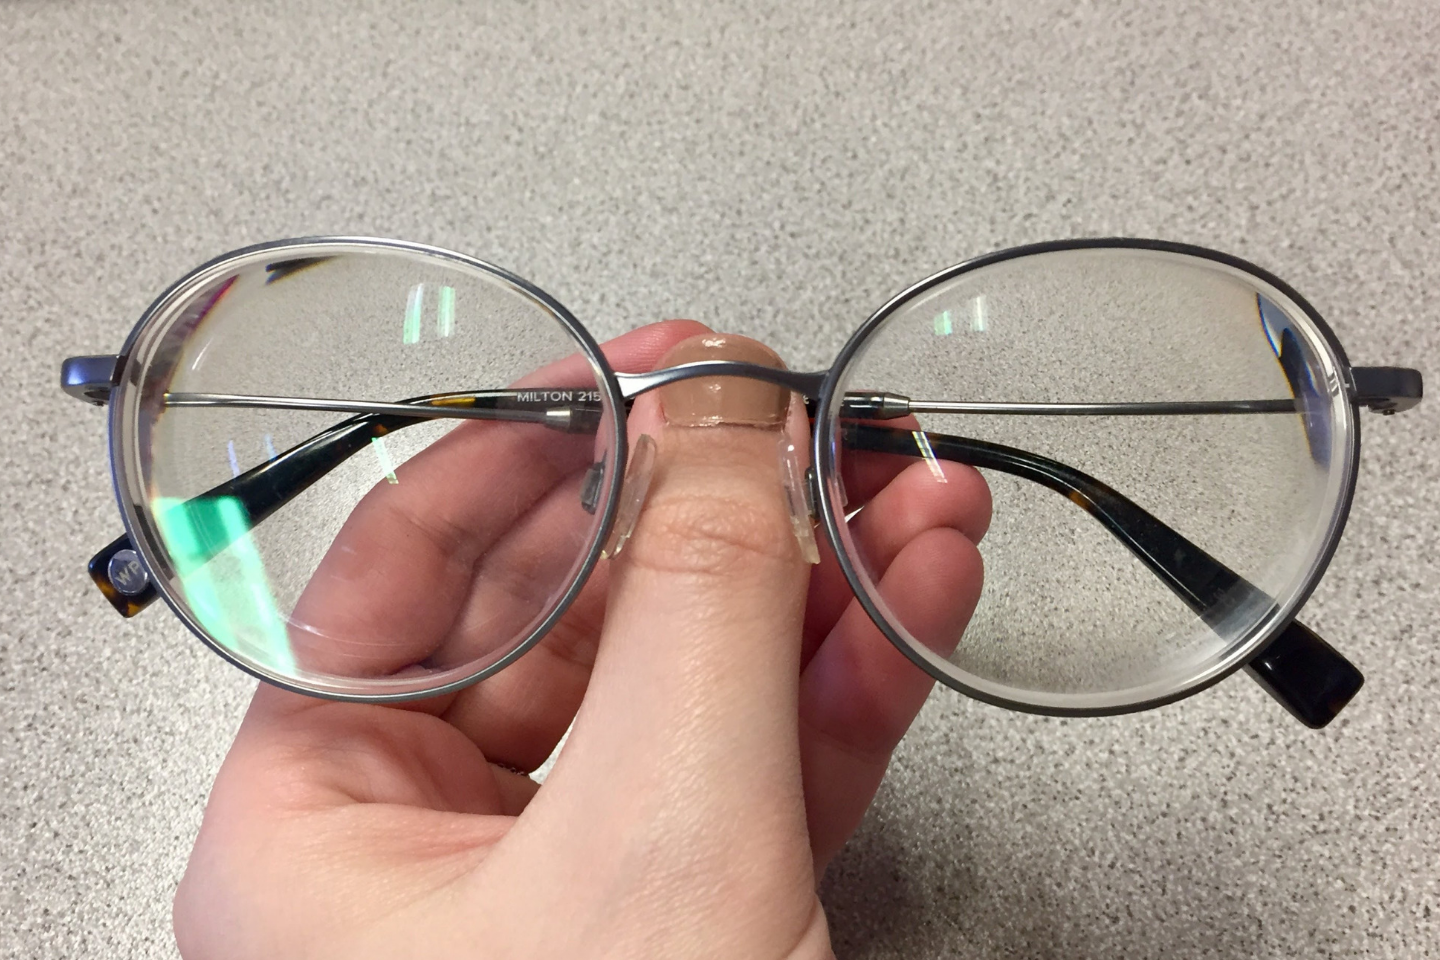 My Warby Parker Glasses Purchase Experience